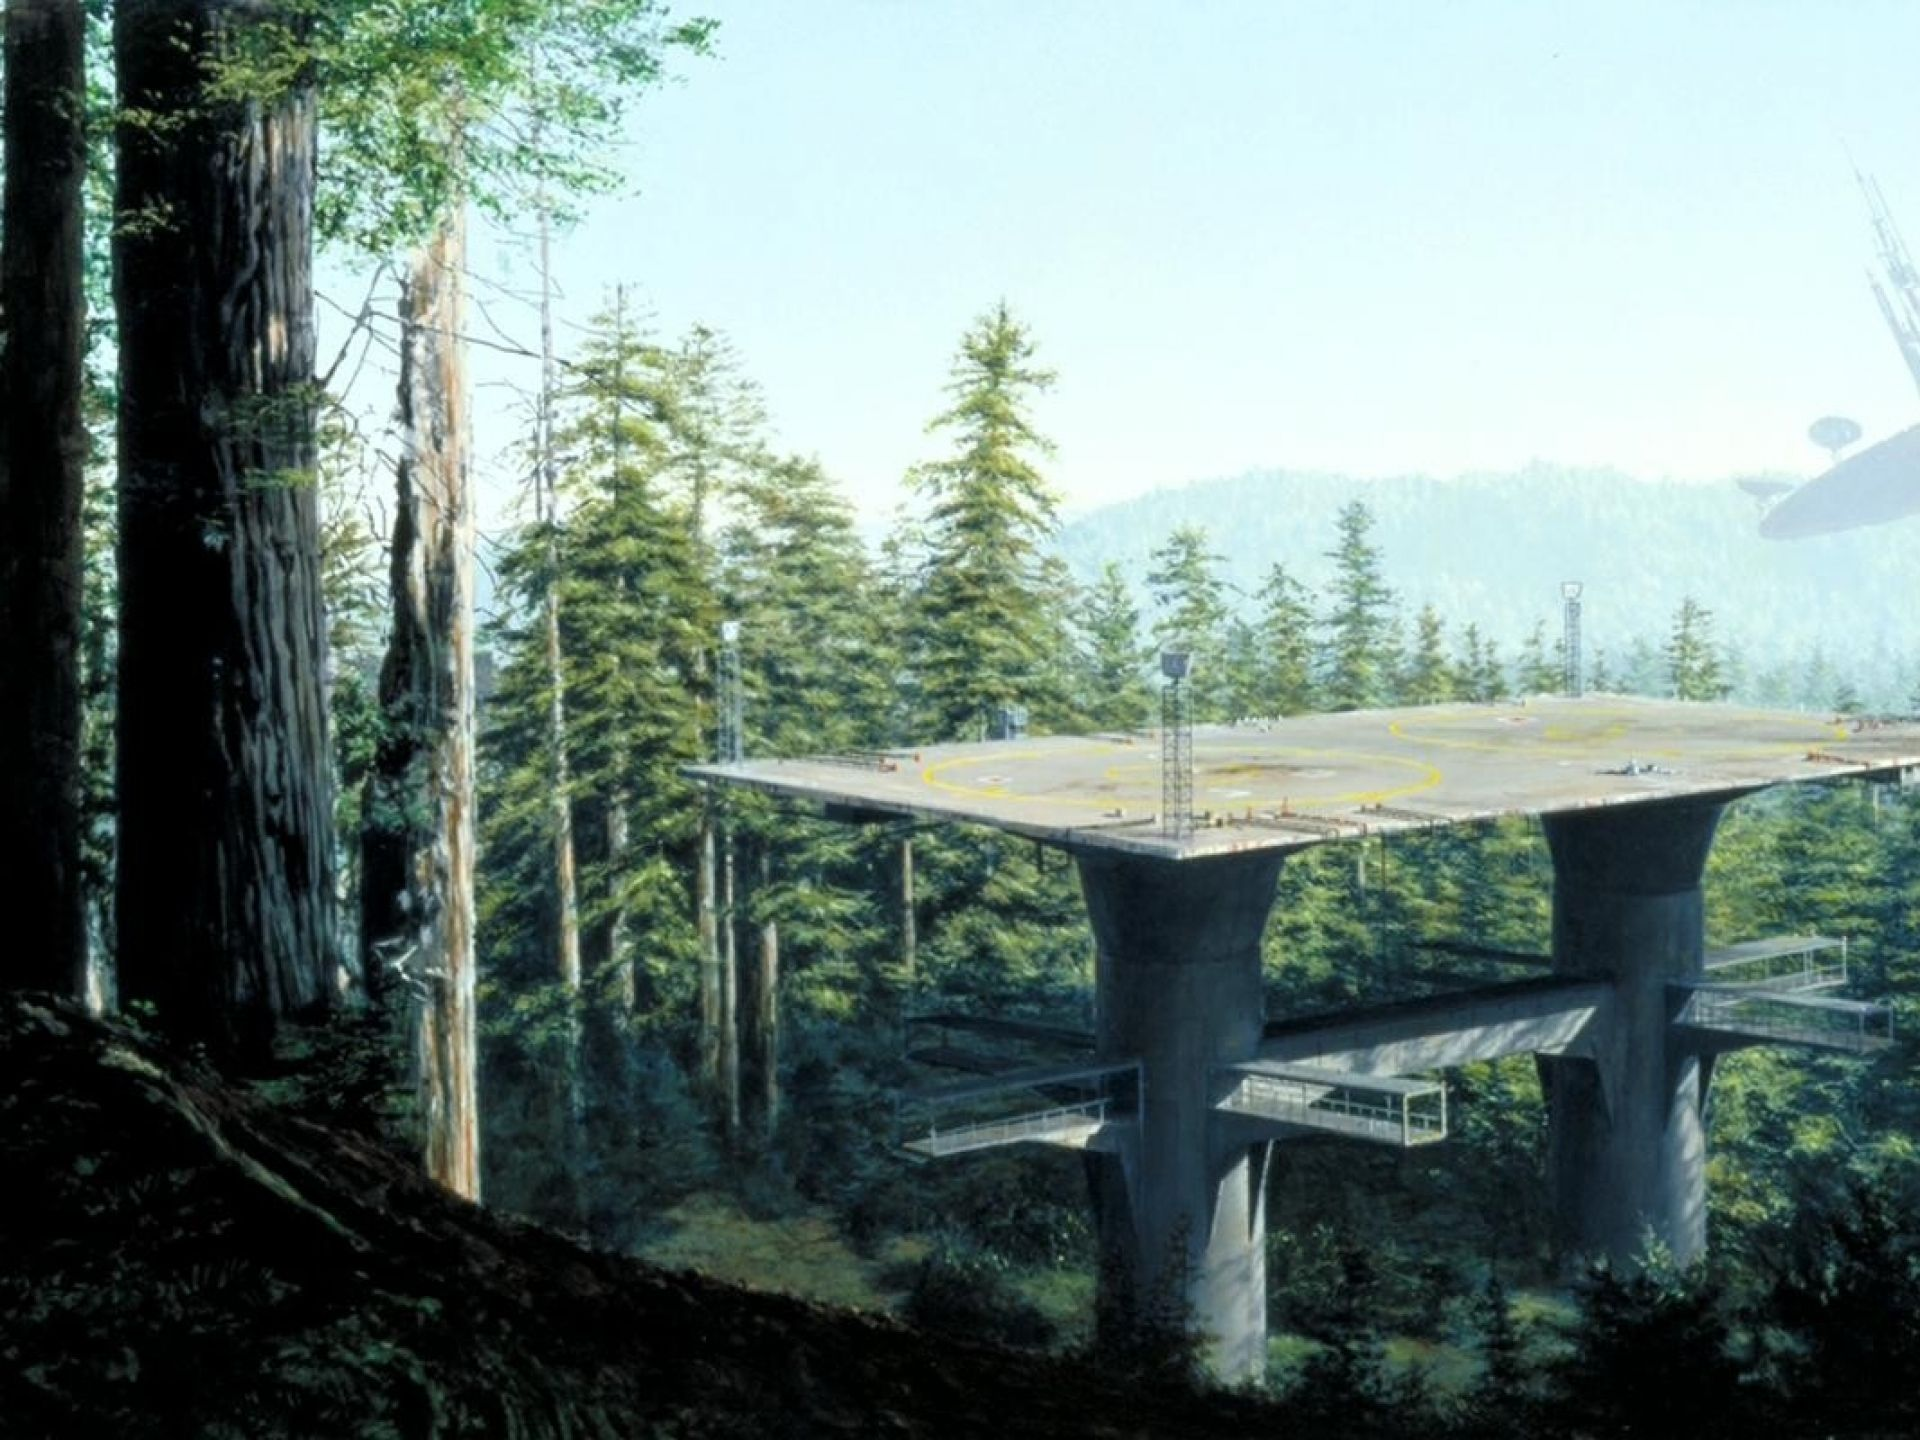 Star Wars Landscapes Trees Movies Futuristic Forest Science Fiction Artwork Endor Wallpaper Matte Painting Classic Star Wars Science Fiction Artwork